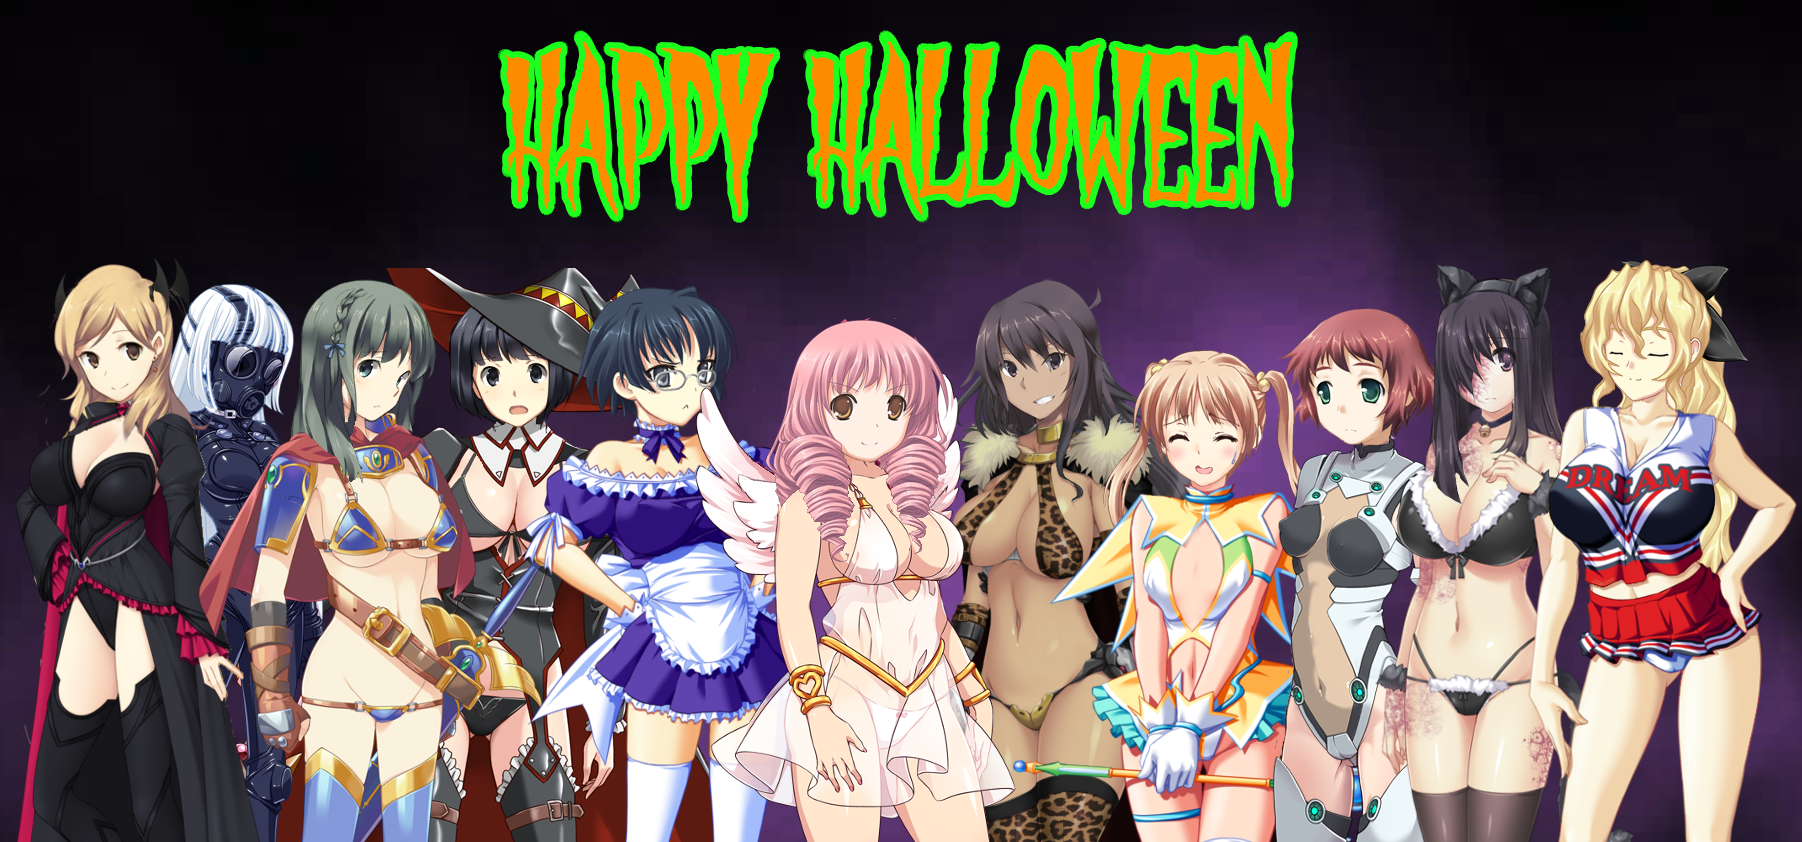 Halloween costumes.png